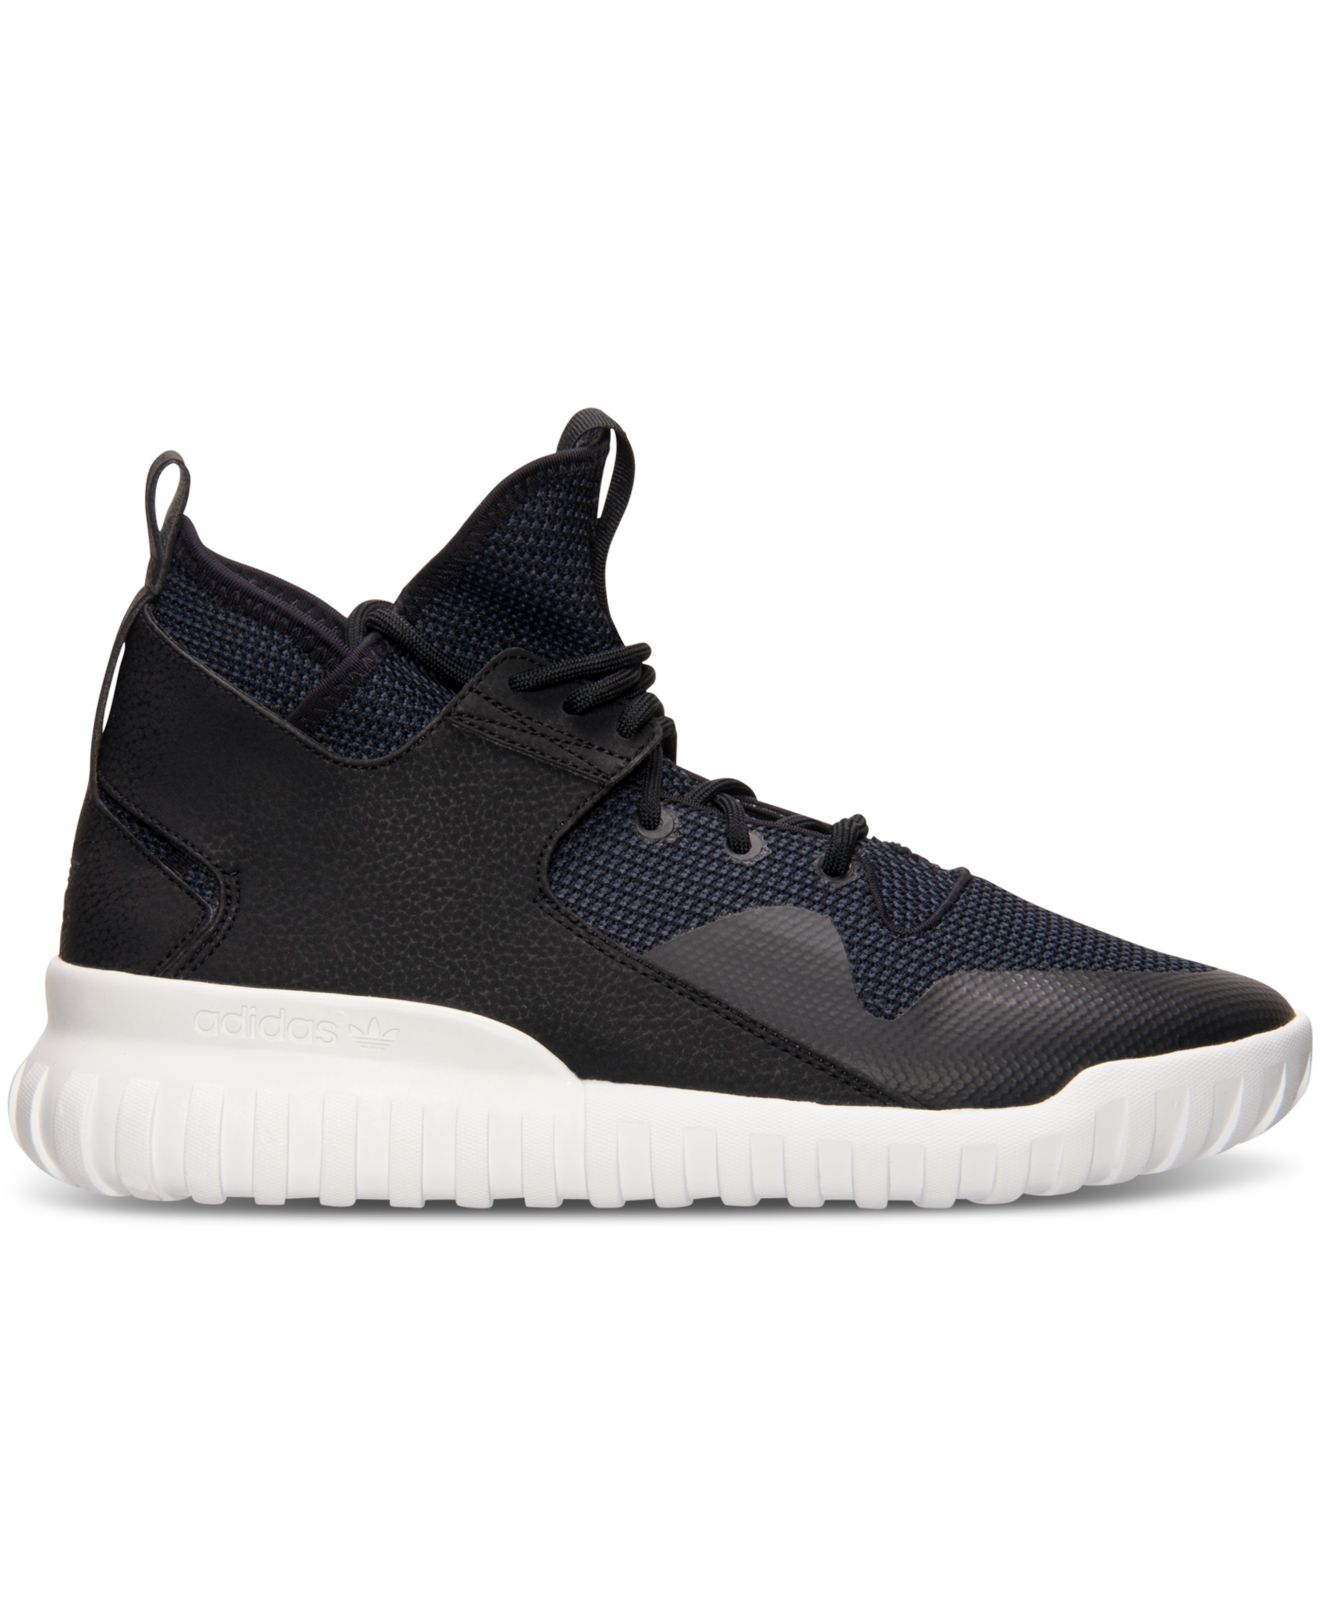 Adidas Originals Baby Tubular Runner Xenopeltis Toddlers S78647